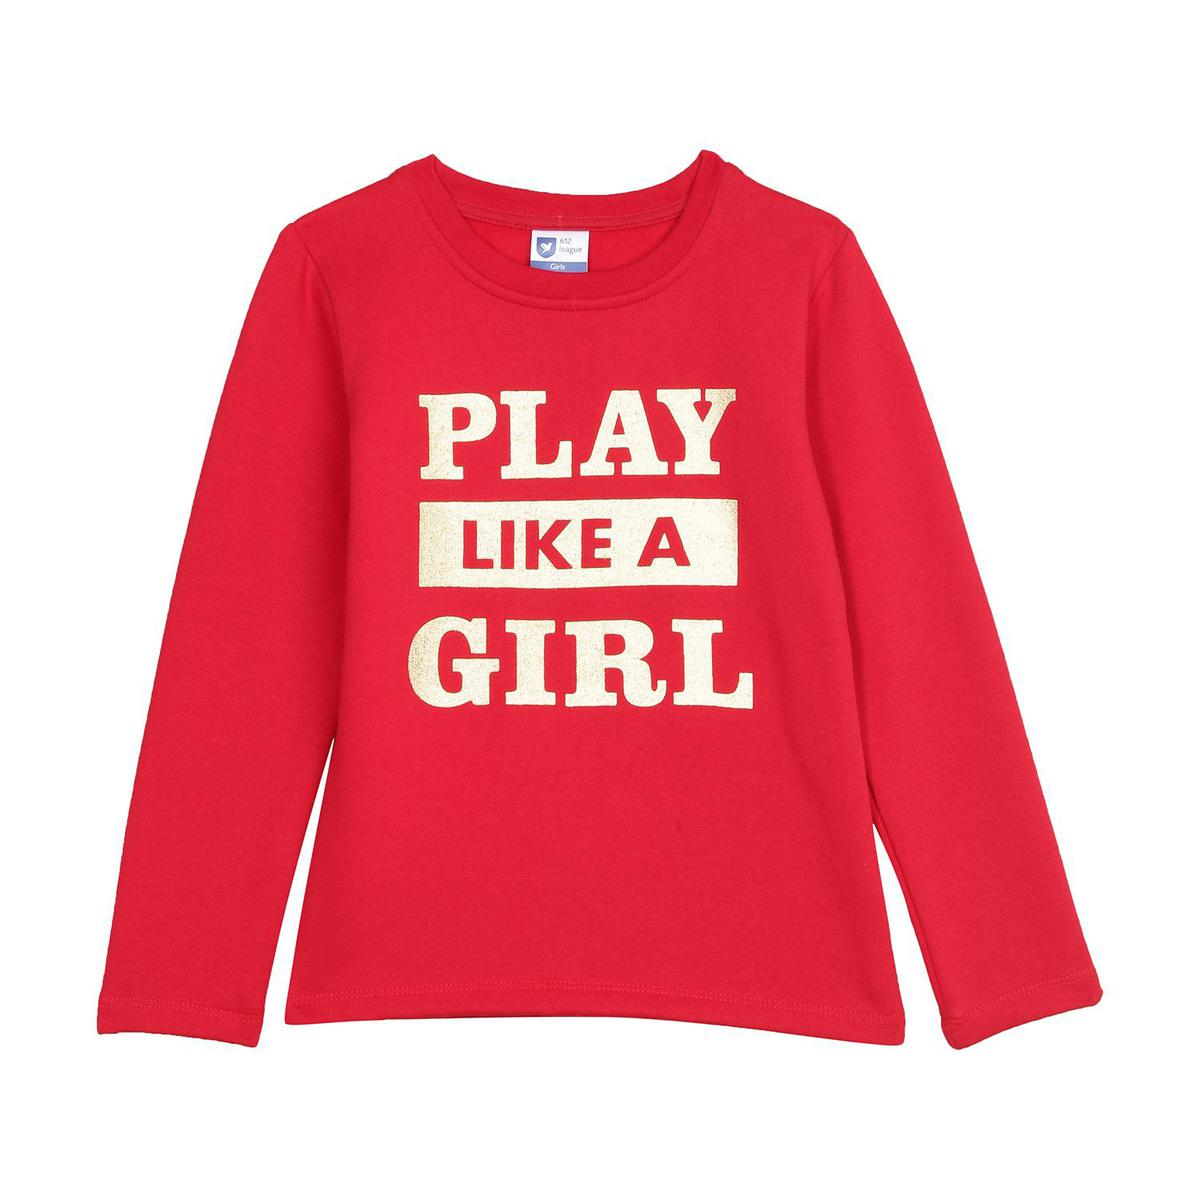 612 League - Red Colored French Terry League Knit Graphic Cotton Sweatshirt For Girls